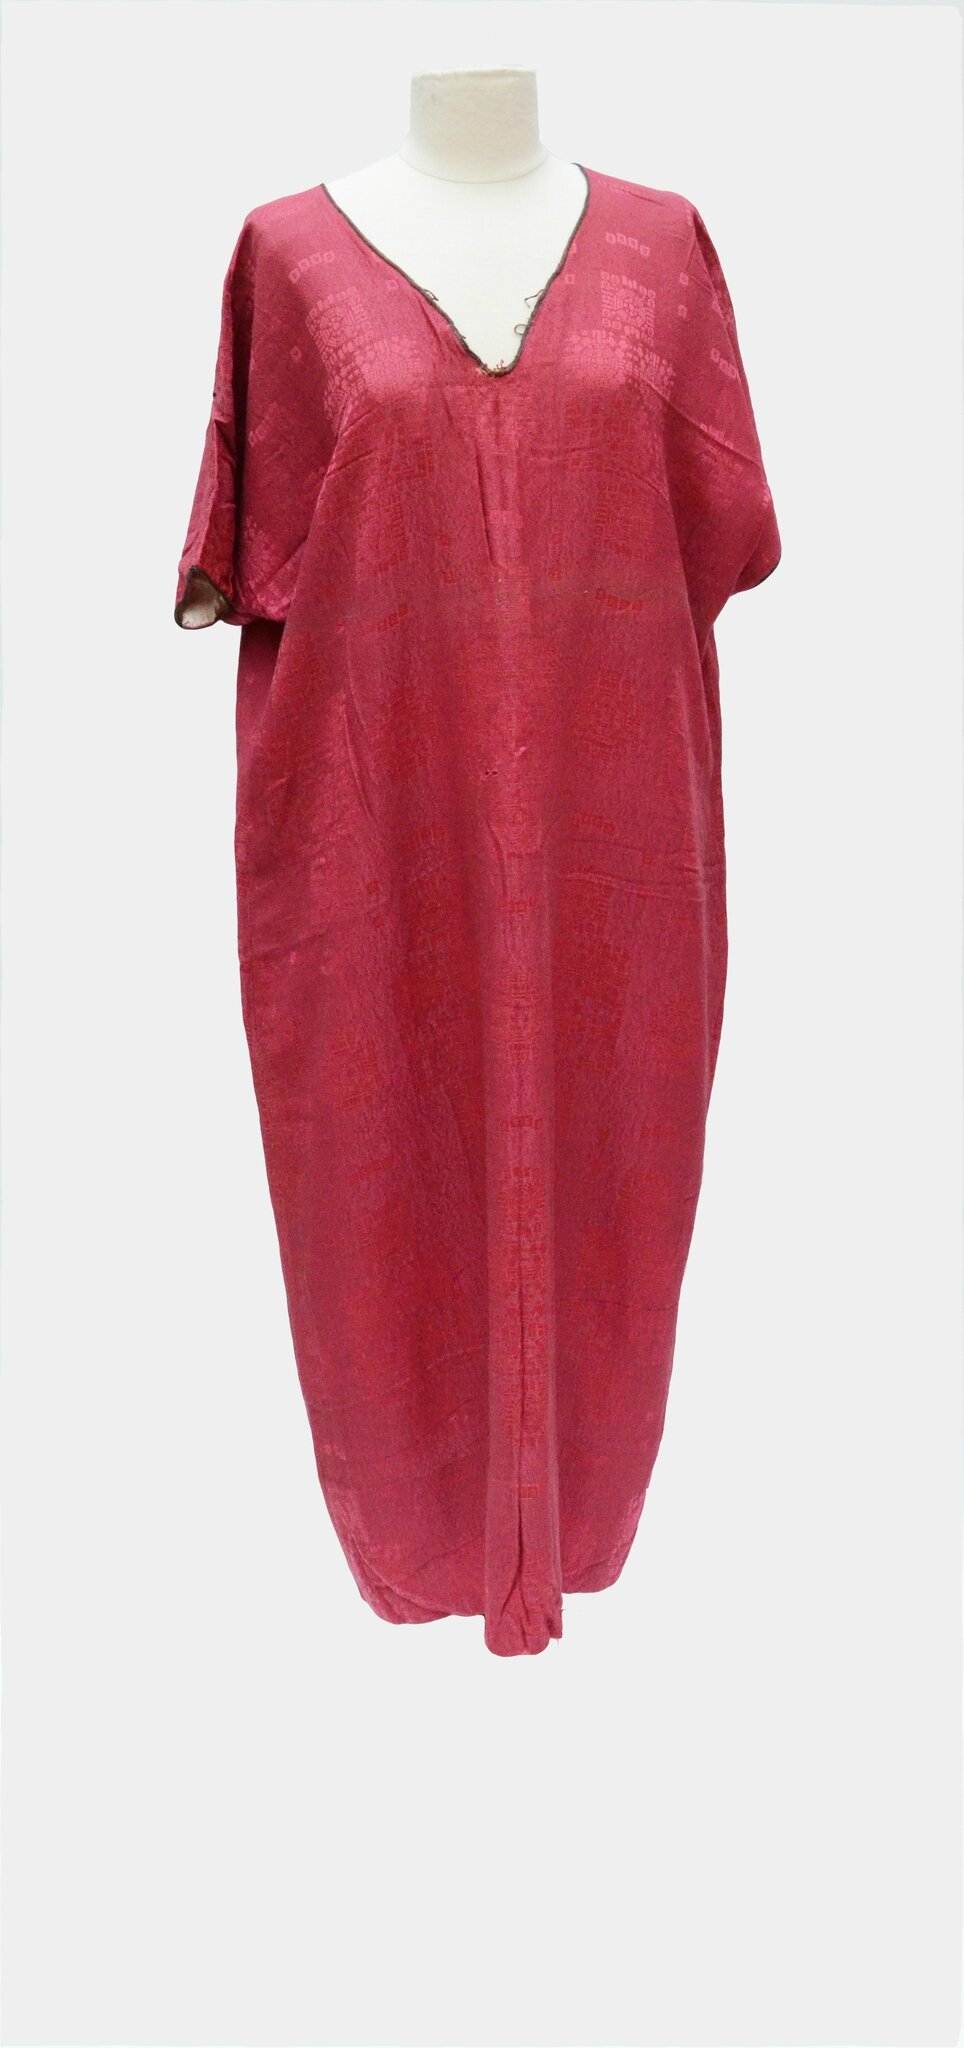 Attribuée à Paul Poiret: Robe tunique en damas de soie rouge framboise, circa 1911